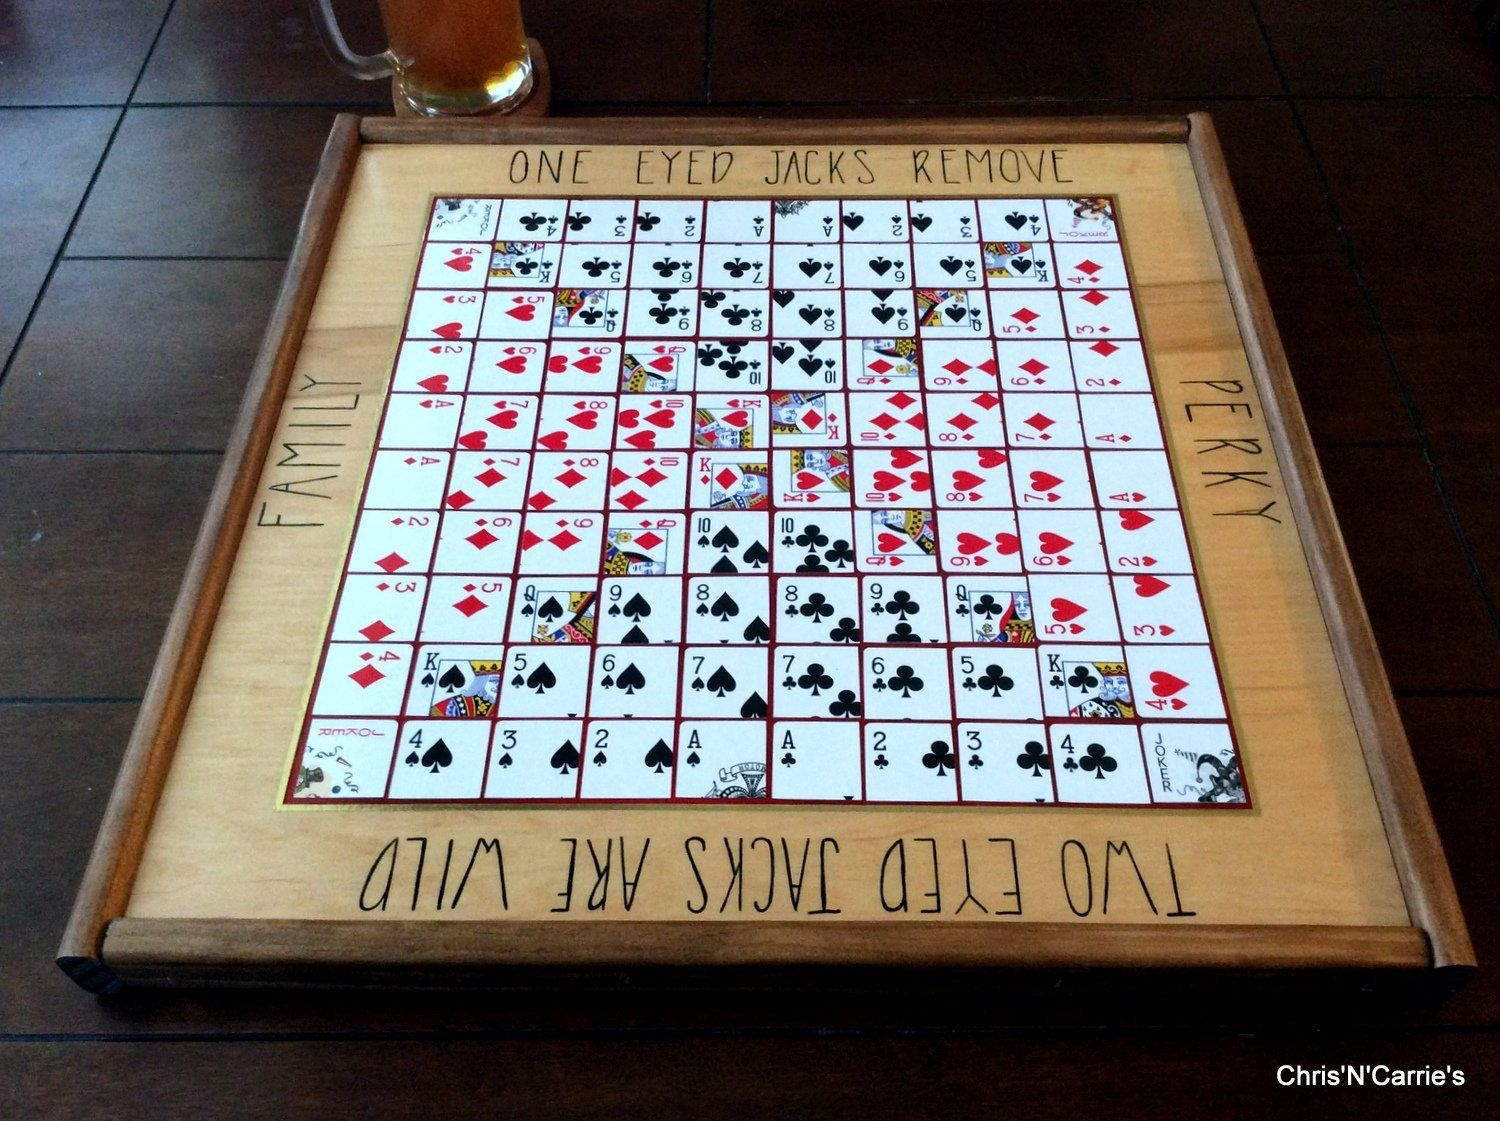 5 in a row custom epoxy One Eyed Jack Board Game multi player hand made